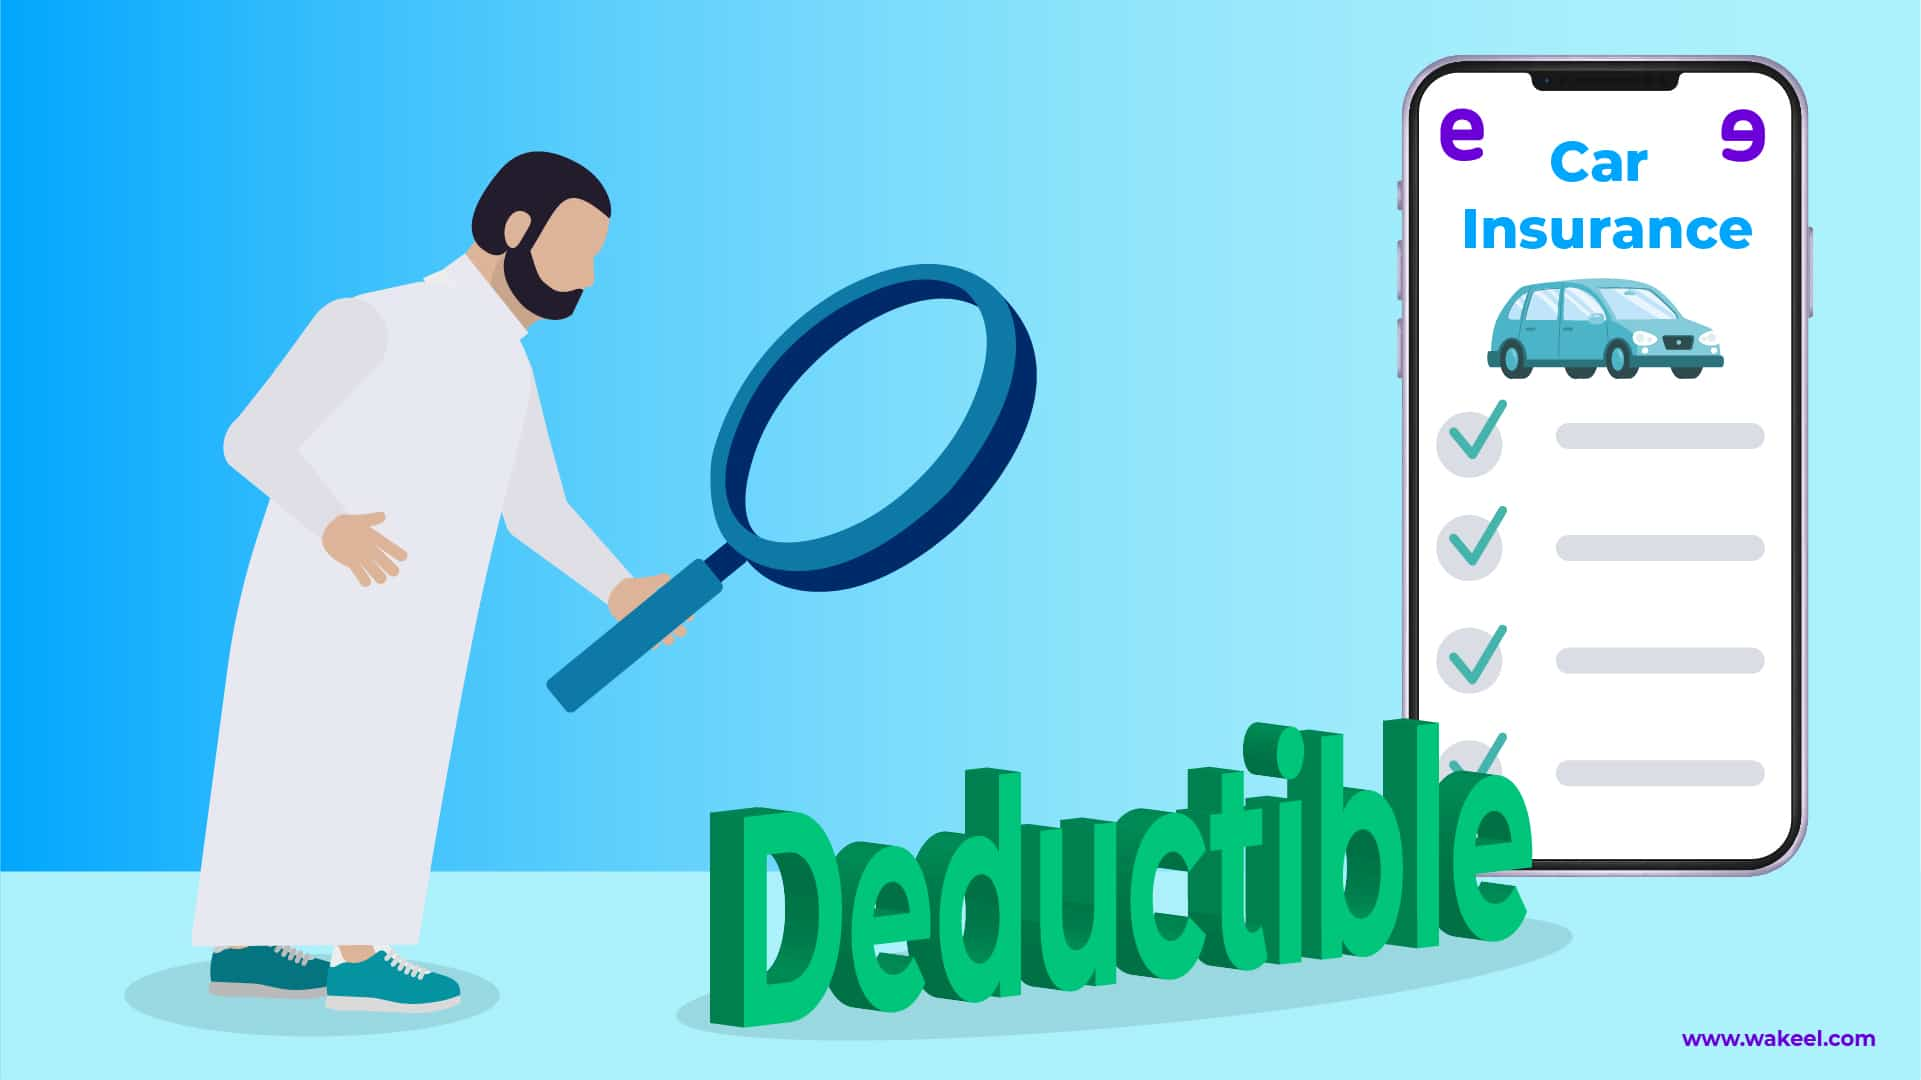 What is Deductible in Car Insurance?